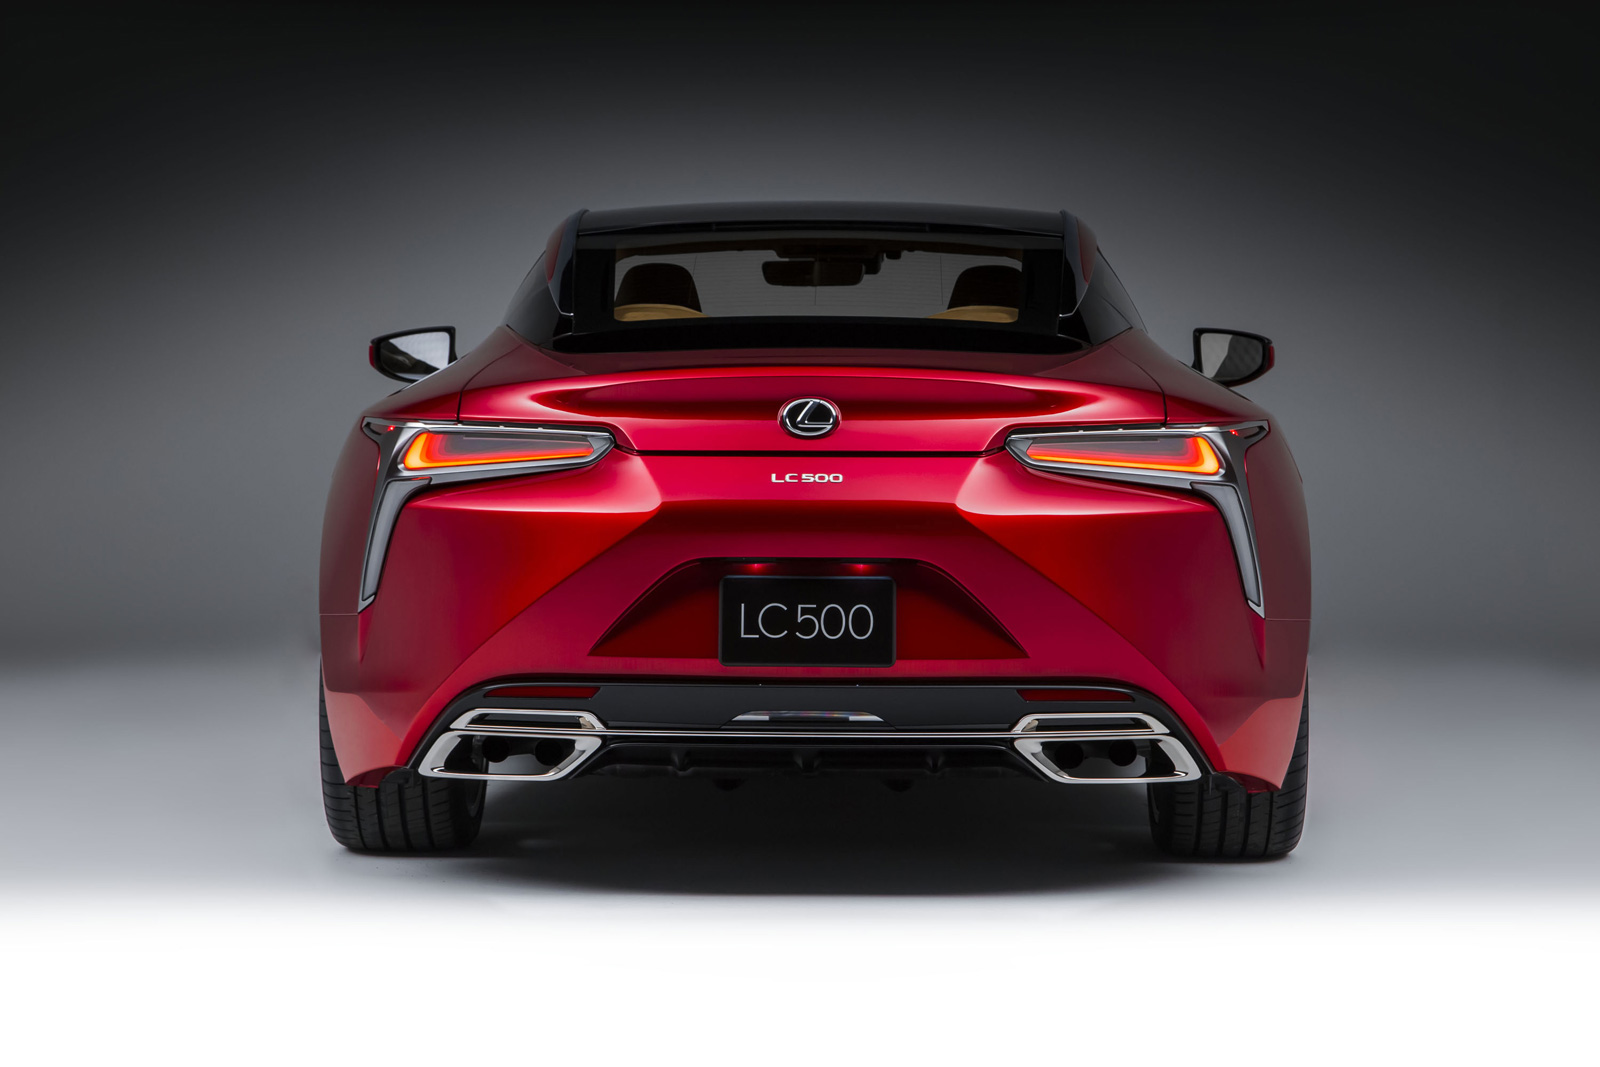 2017 Lexus Lc500 Official Gallery 19